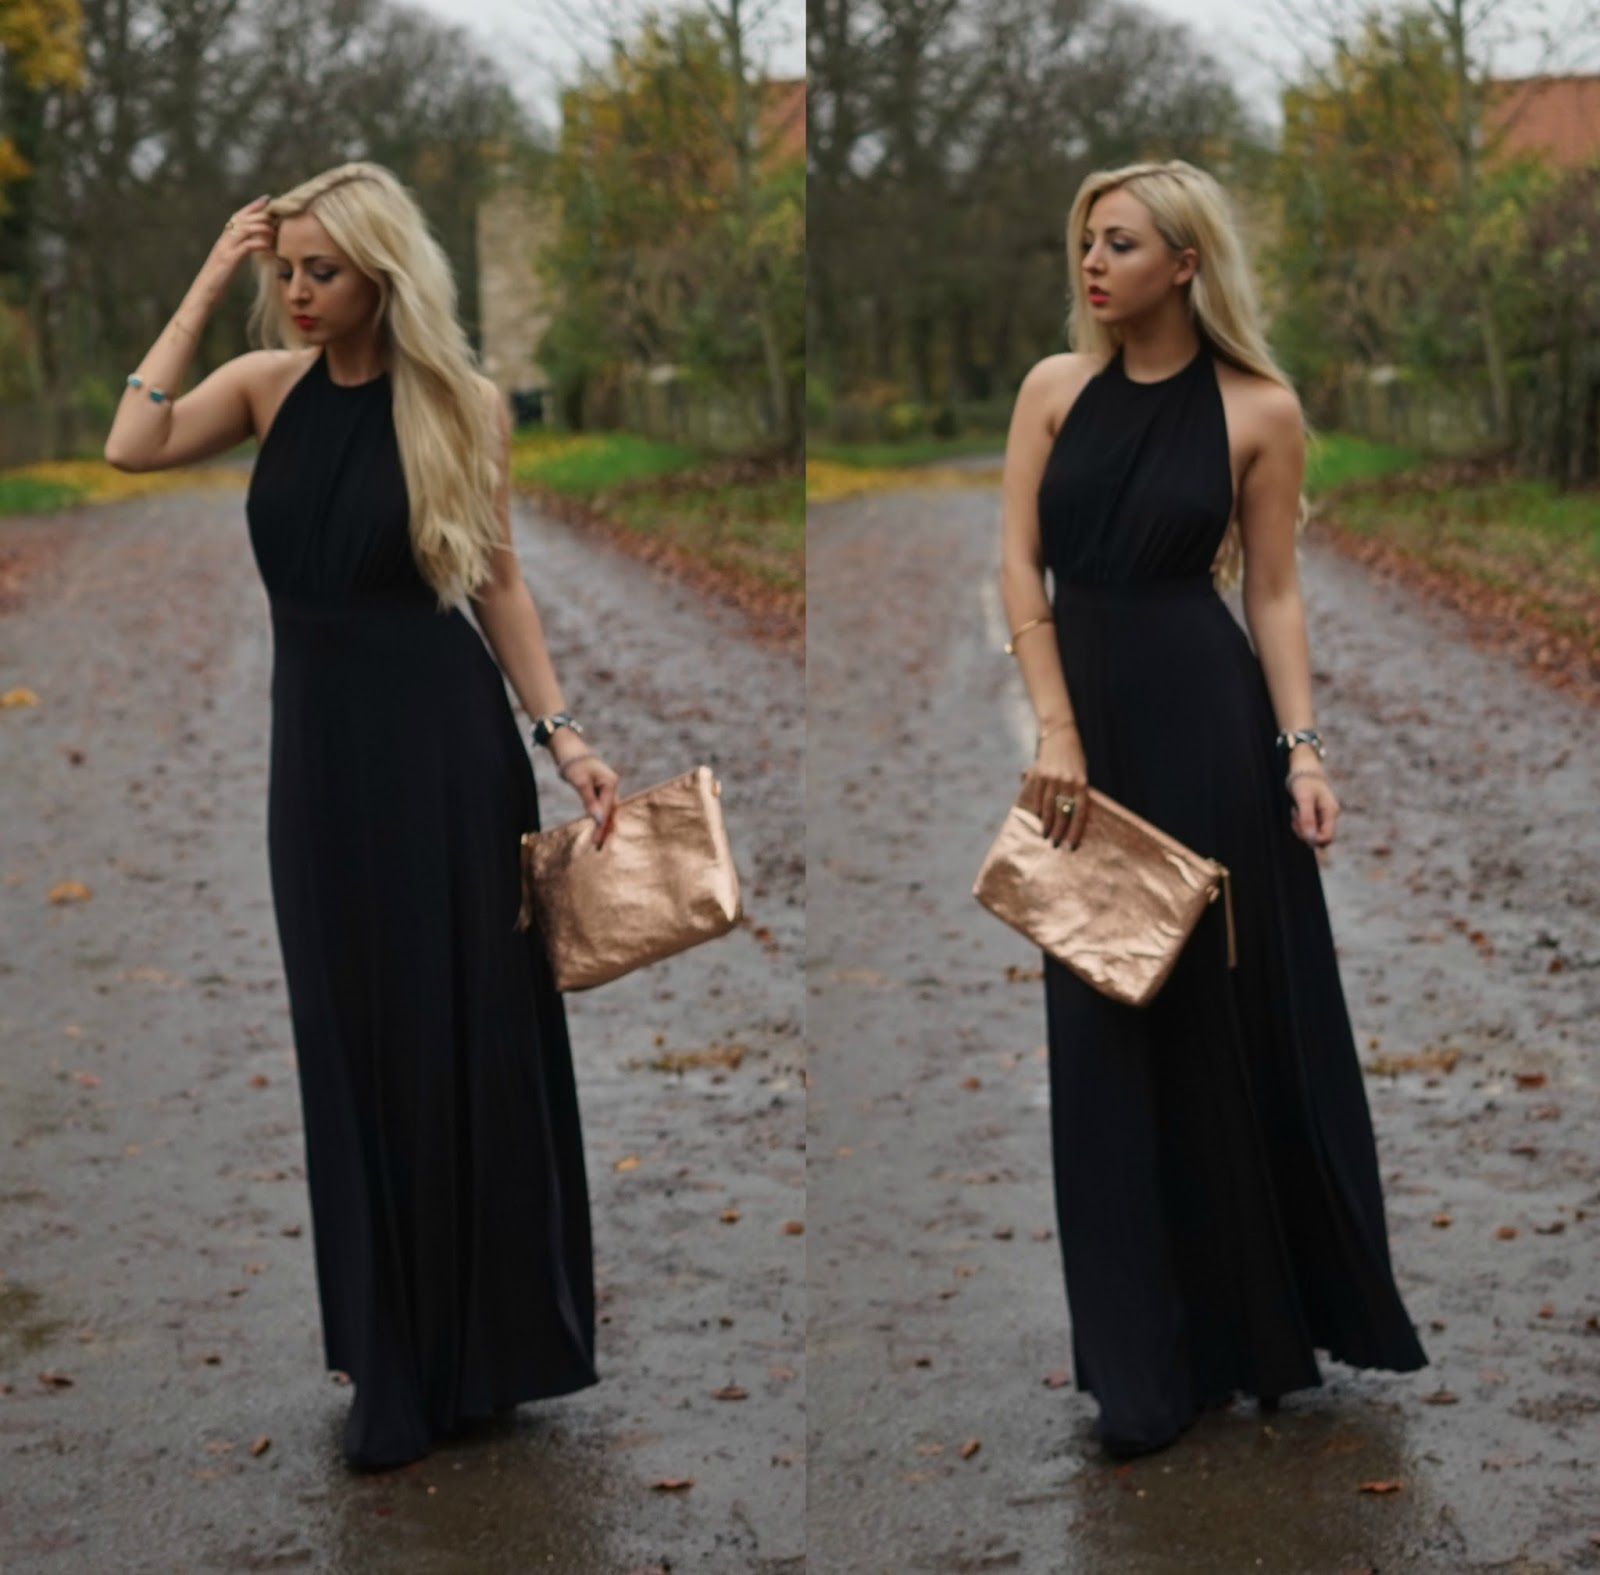 Dress up xmas party - First Up Is This Gorgeous Black Maxi Dress From Pretty Little Thing This One Is Actually From The Gorgeous Lucy Mecklenburgh S Collection And We All Know